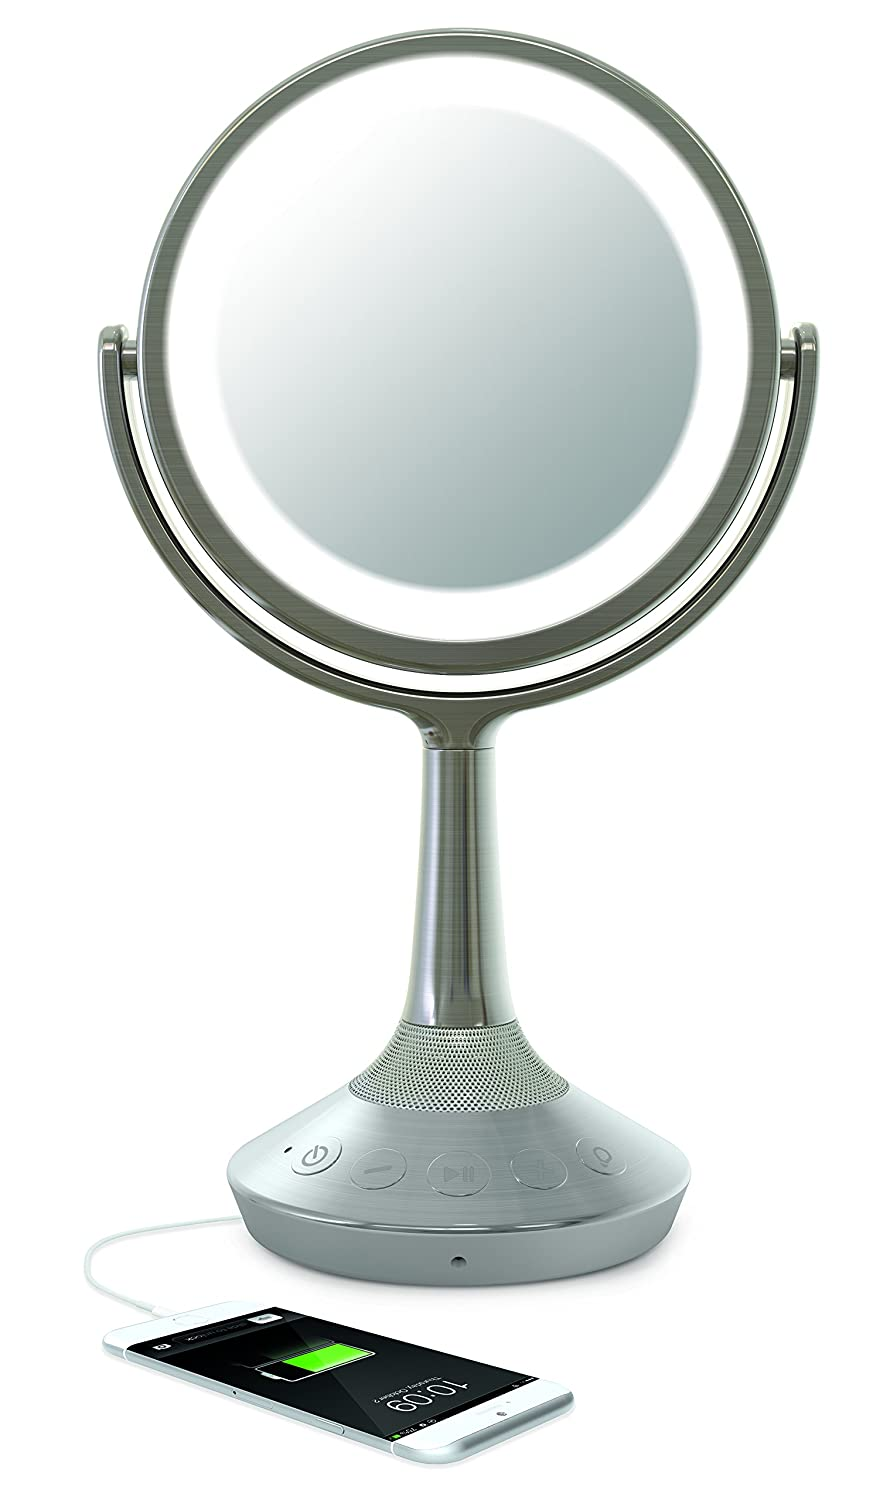 iHome iCVBT52 6 Double-sided Vanity Mirror with Bluetooth Audio / Speakerphone and USB Charging (Silver Nickel)